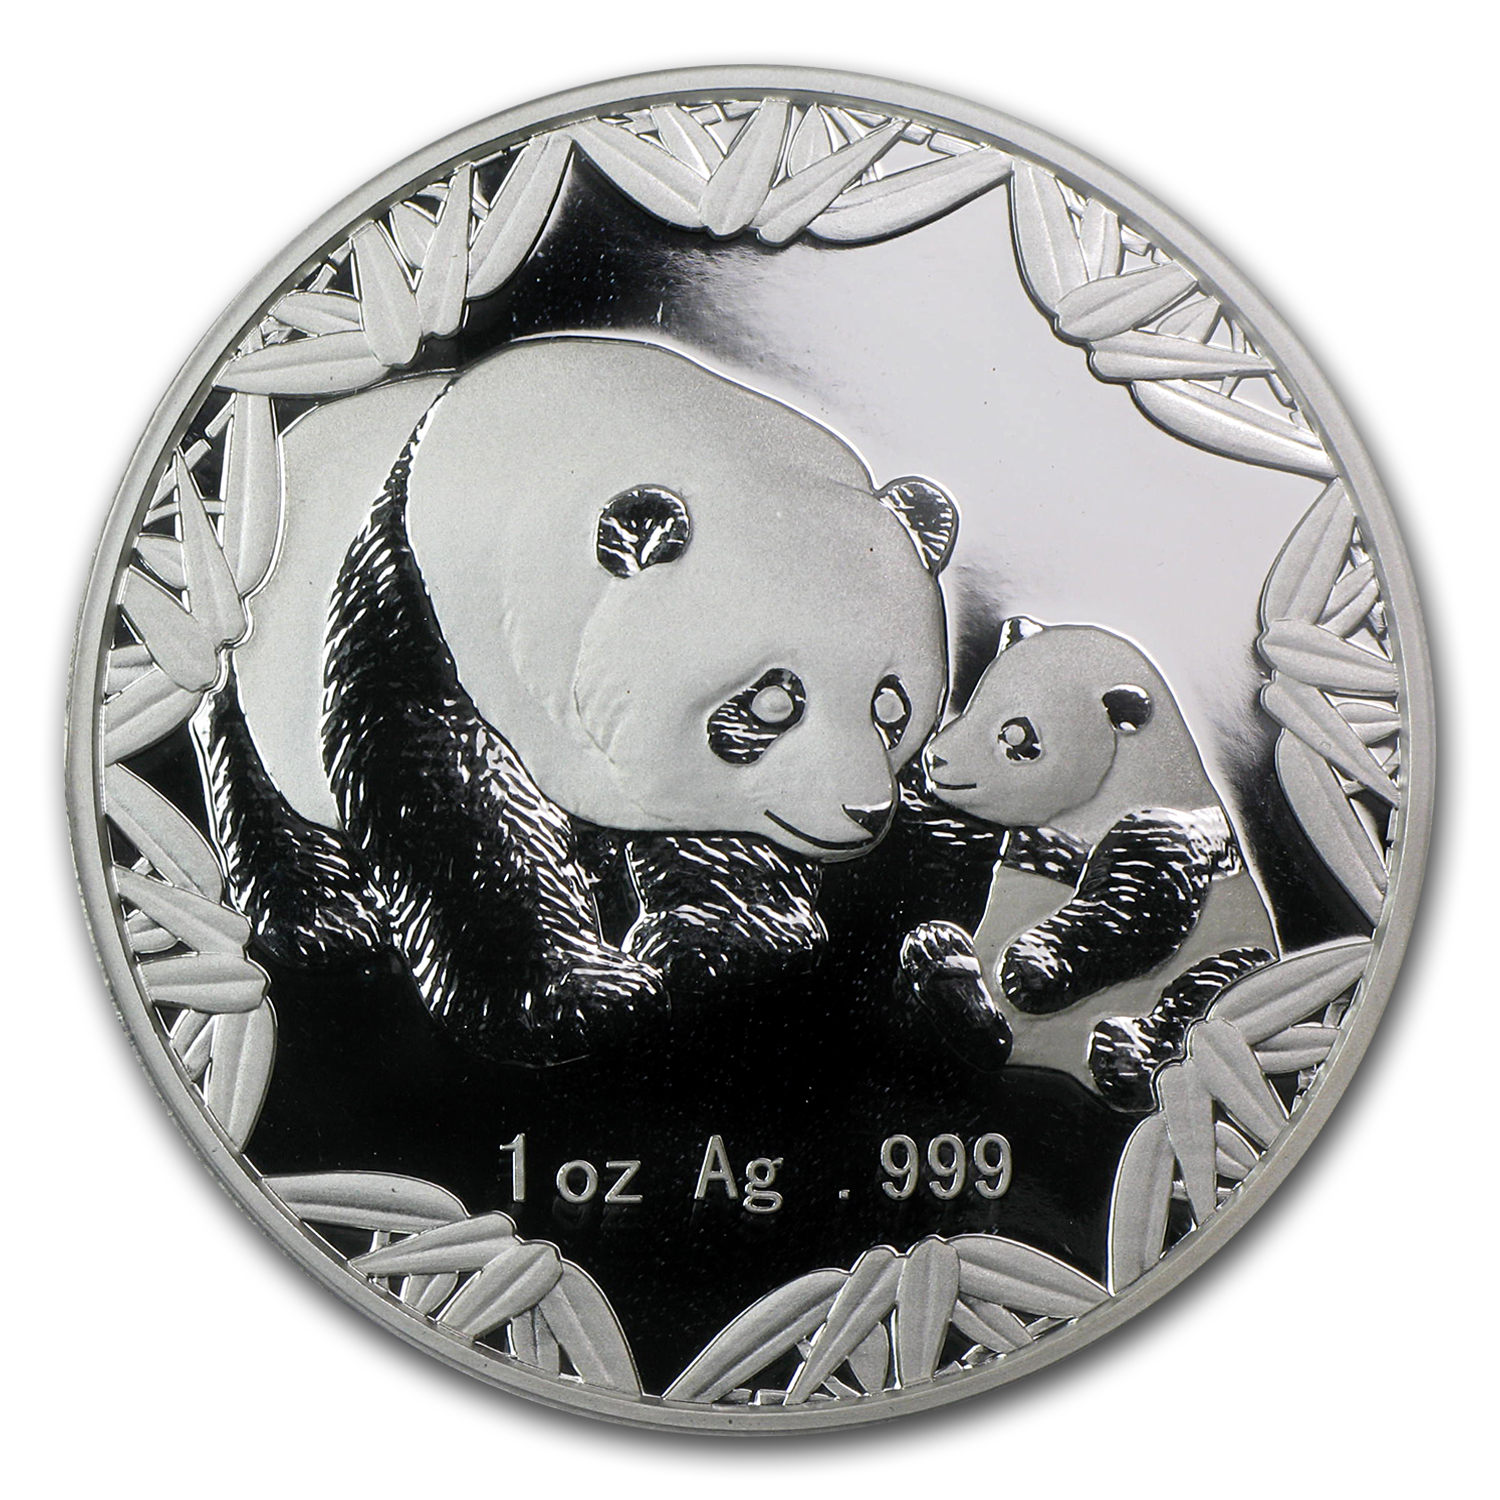 2012 China 1 oz Silver Panda Philadelphia Coin Show PR-70 PCGS